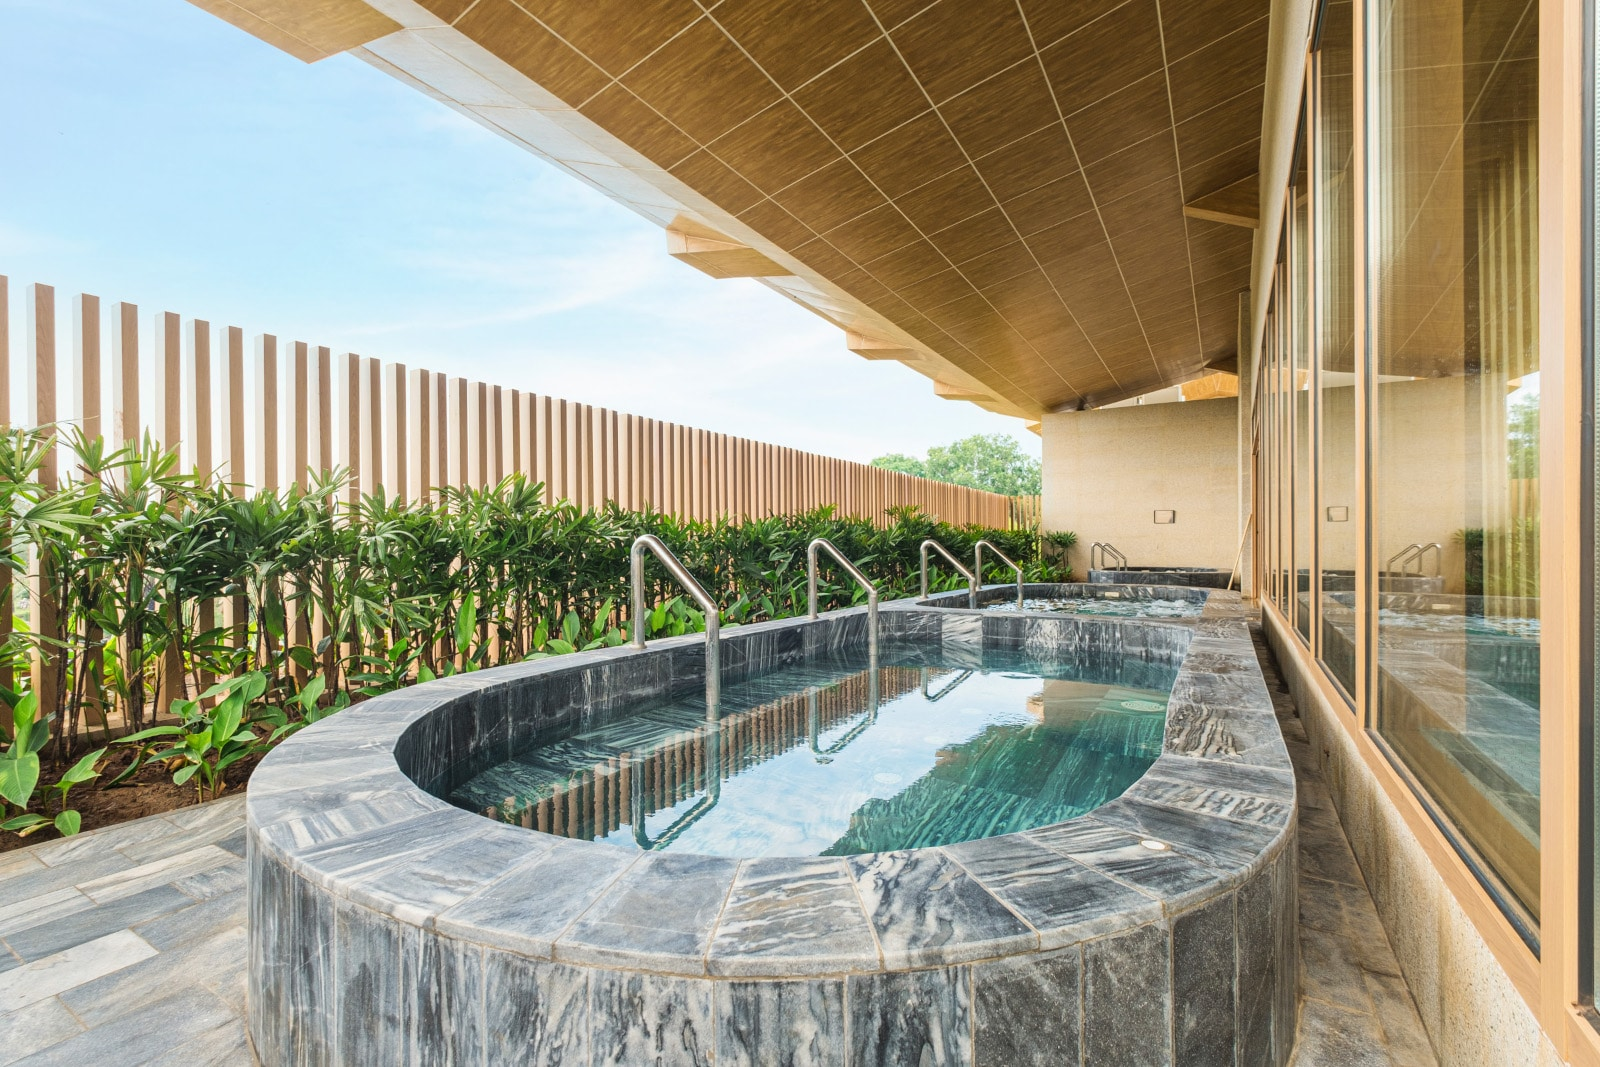 Image of an outdoor onsen at the Minera Hot Spring Binh Chau in Vietnam